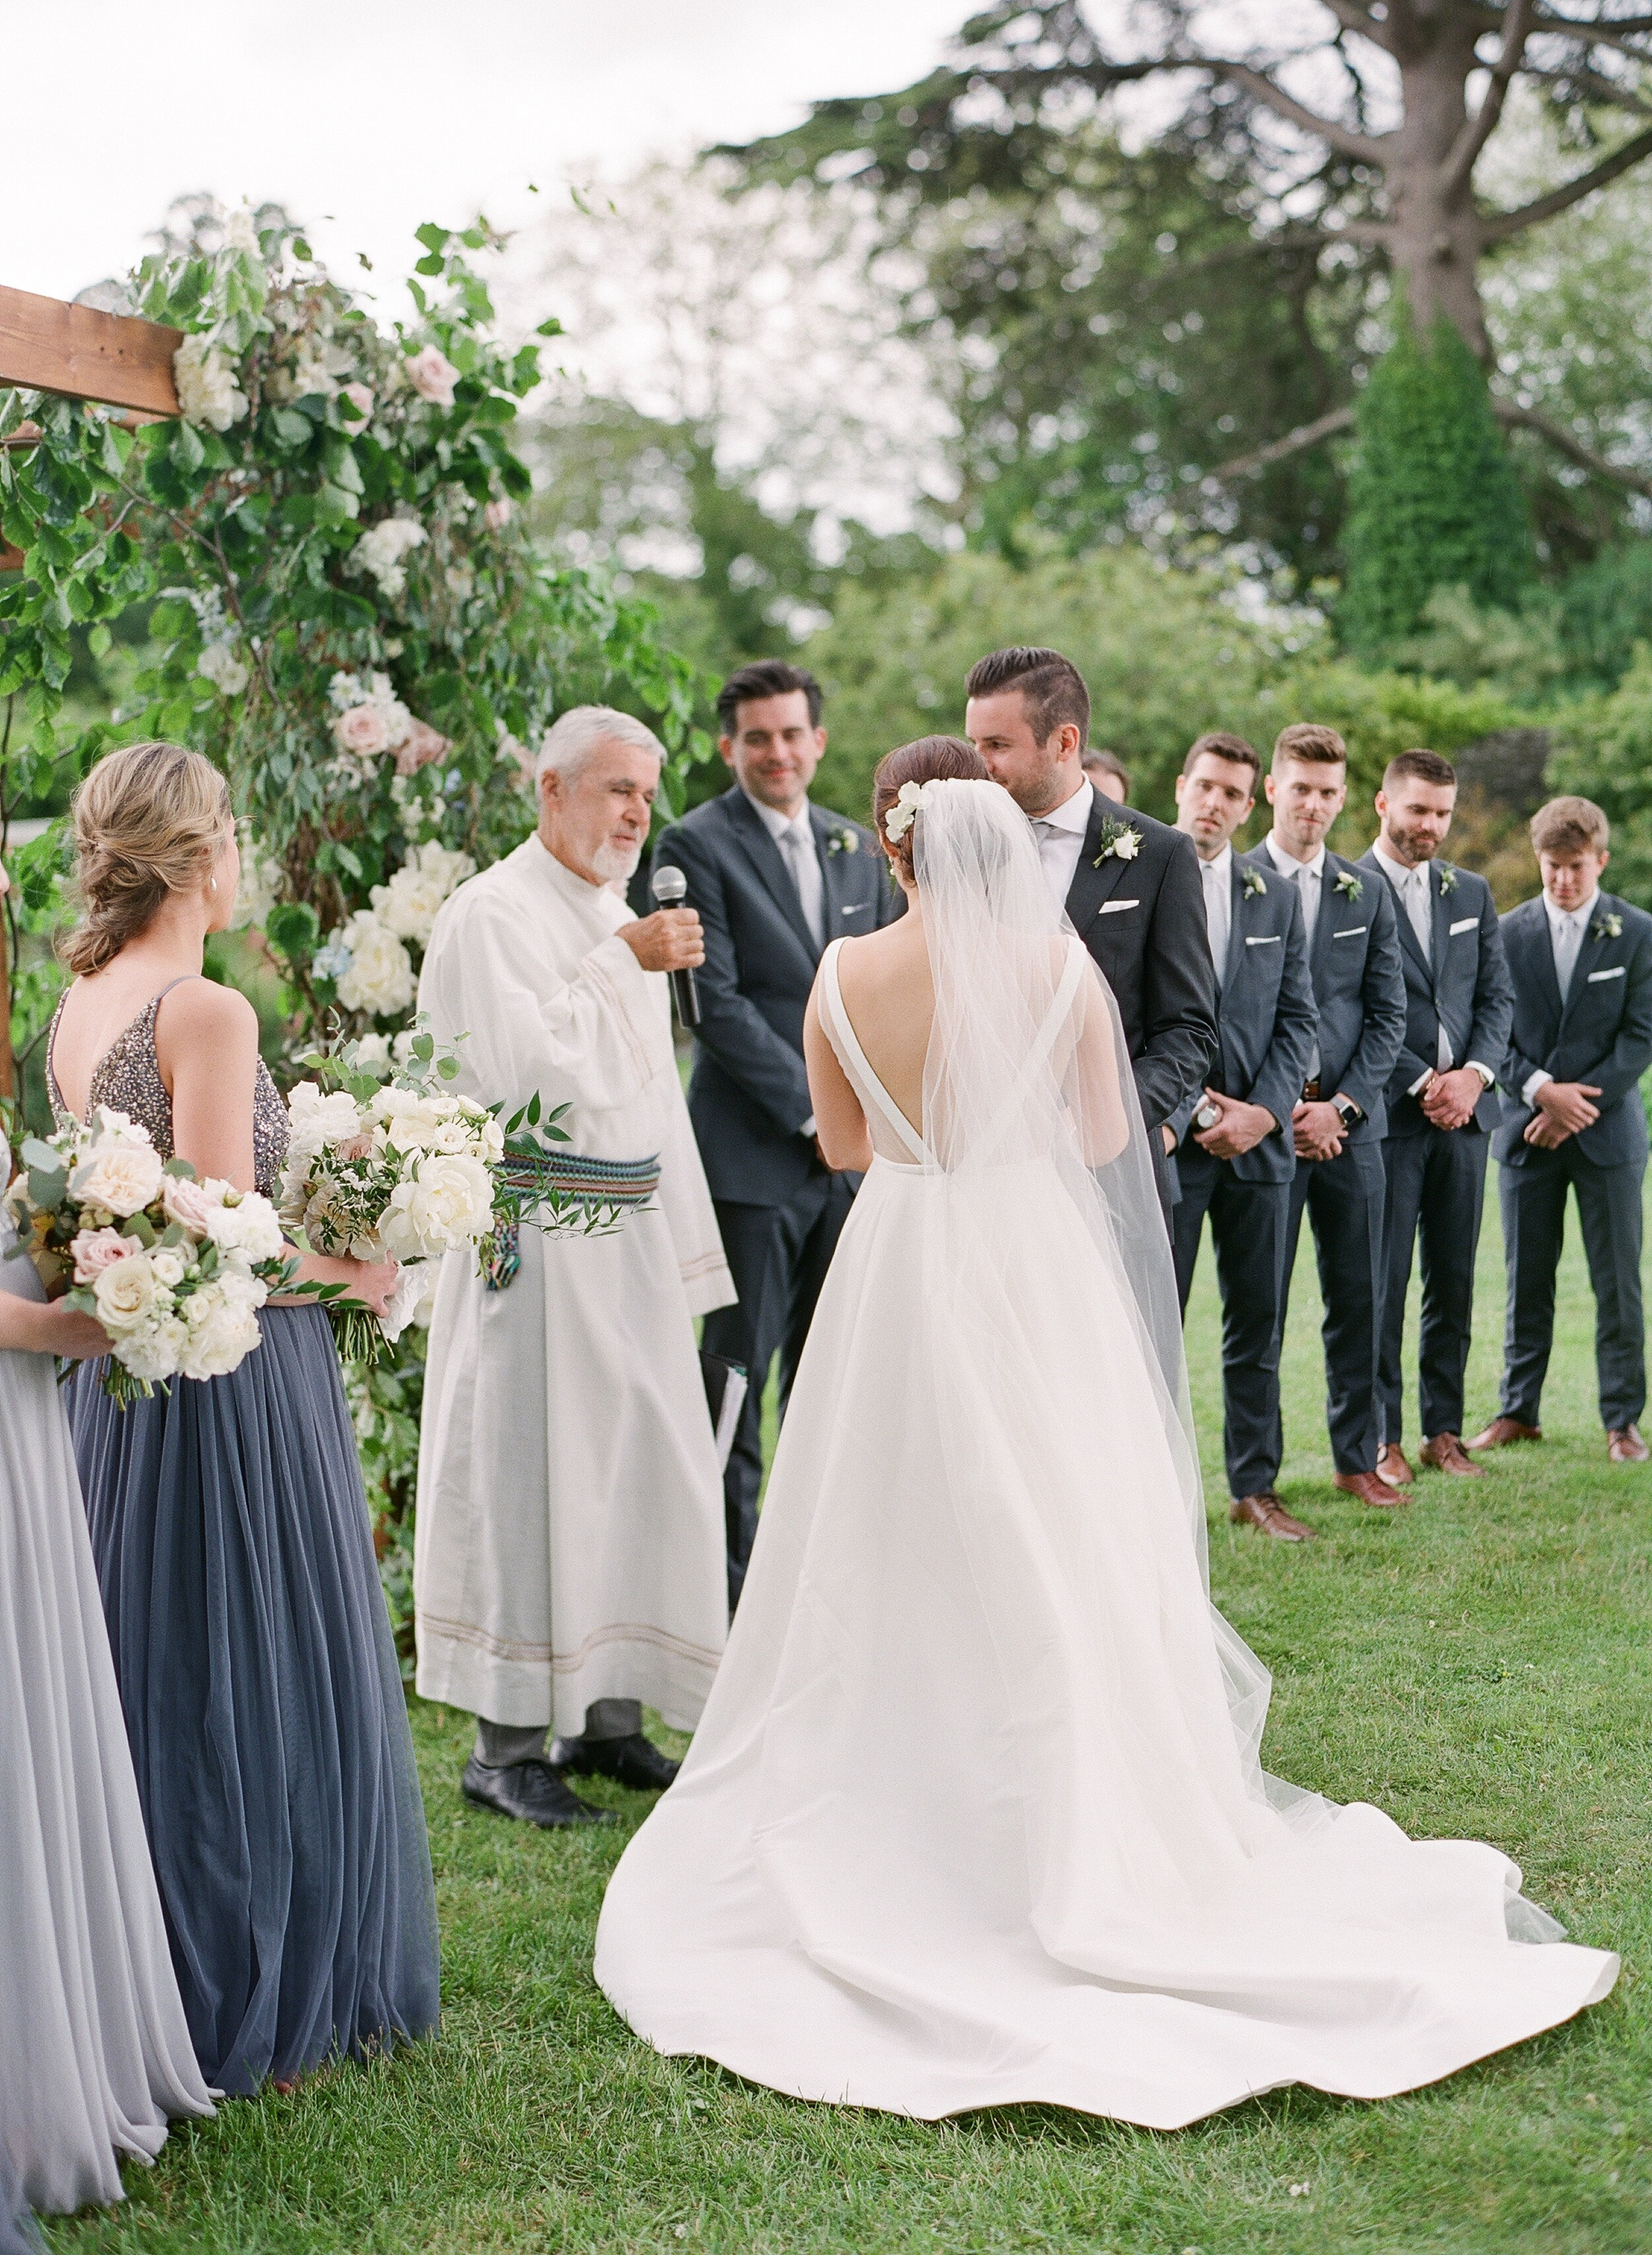 Bella-Botanica-Flowers-Molly-Carr-Photography-Ceremony-Wedding-Vows-Mount -Juliet-Floral-Arbor.-Arch